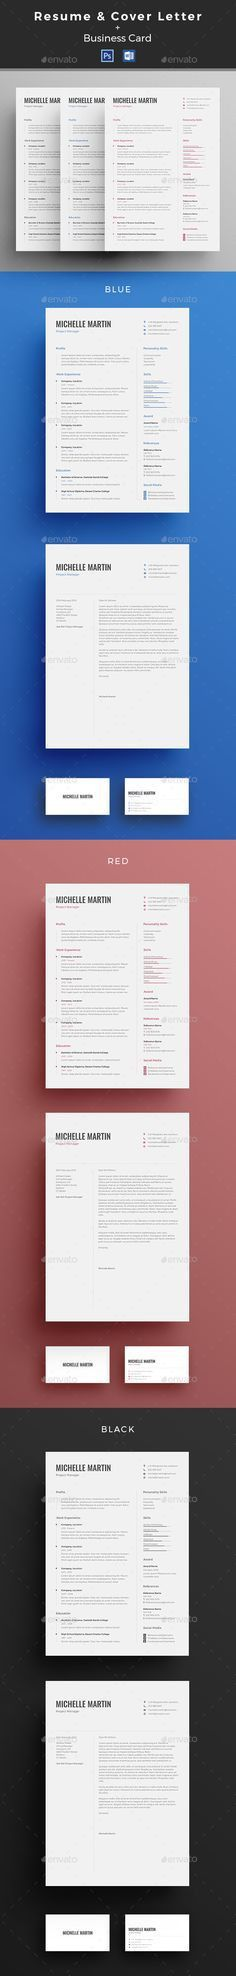 Pin by kimhannah on port | Pinterest | Cv template, Cv design and ...